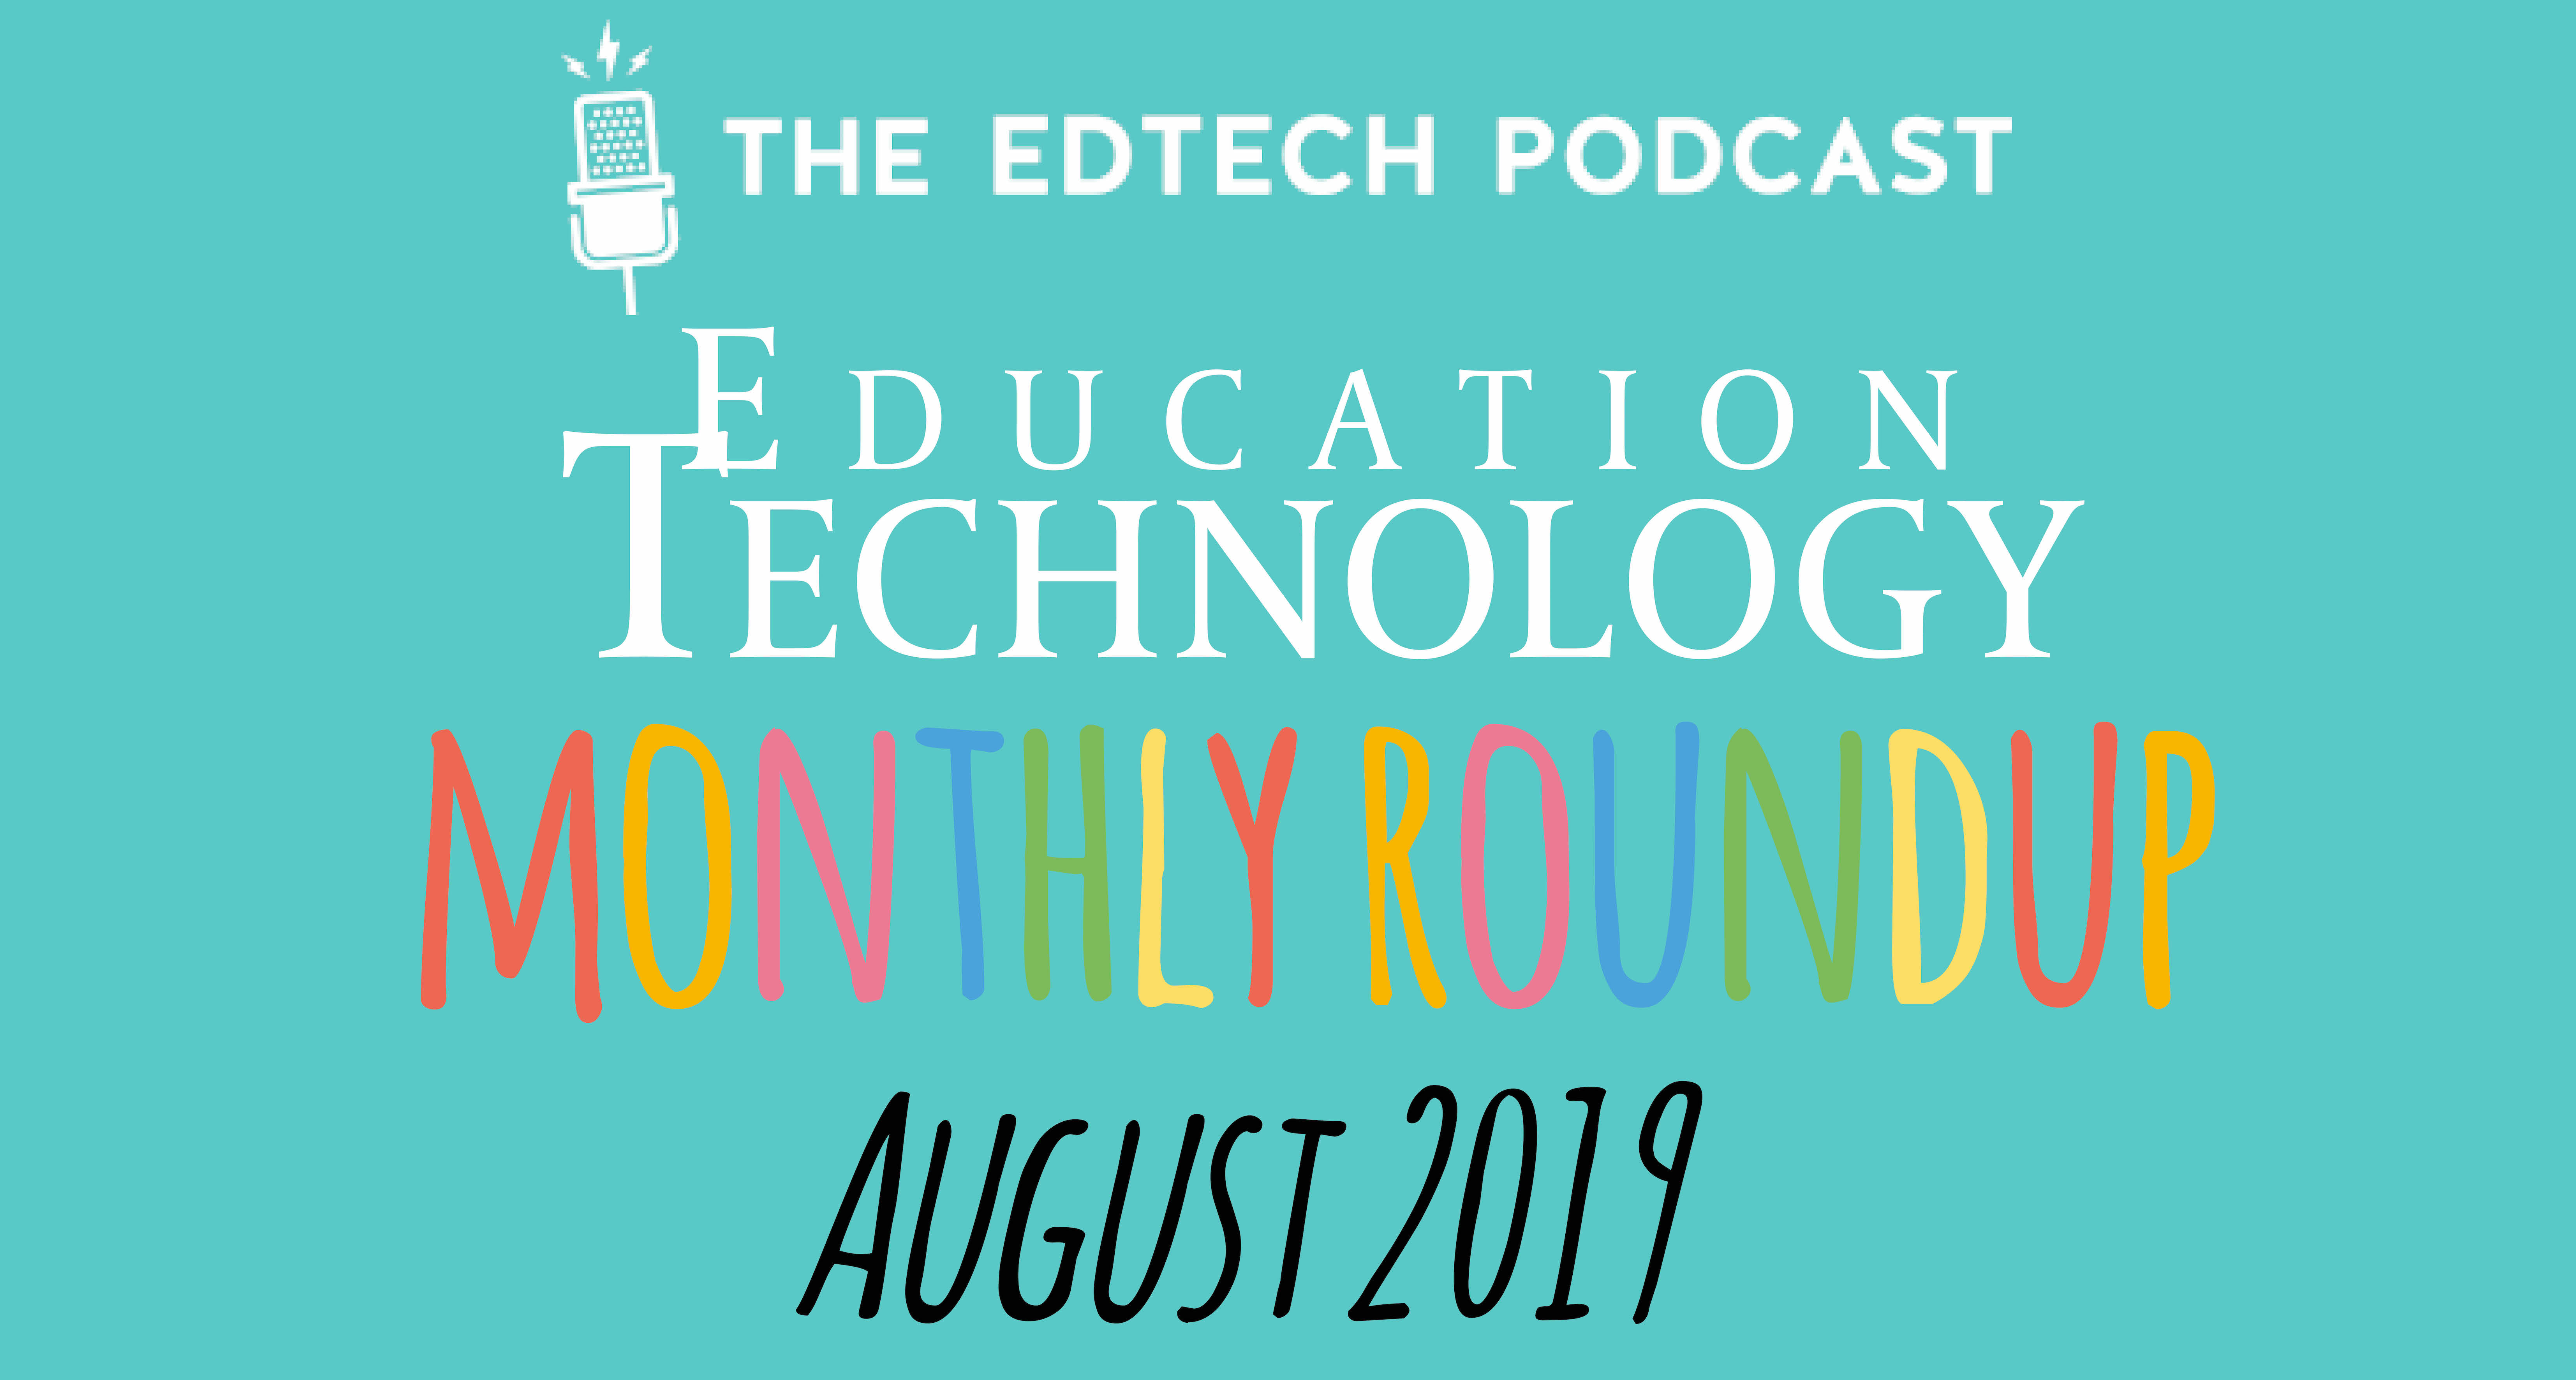 The Edtech Podcast monthly roundup: August 2019 - Education